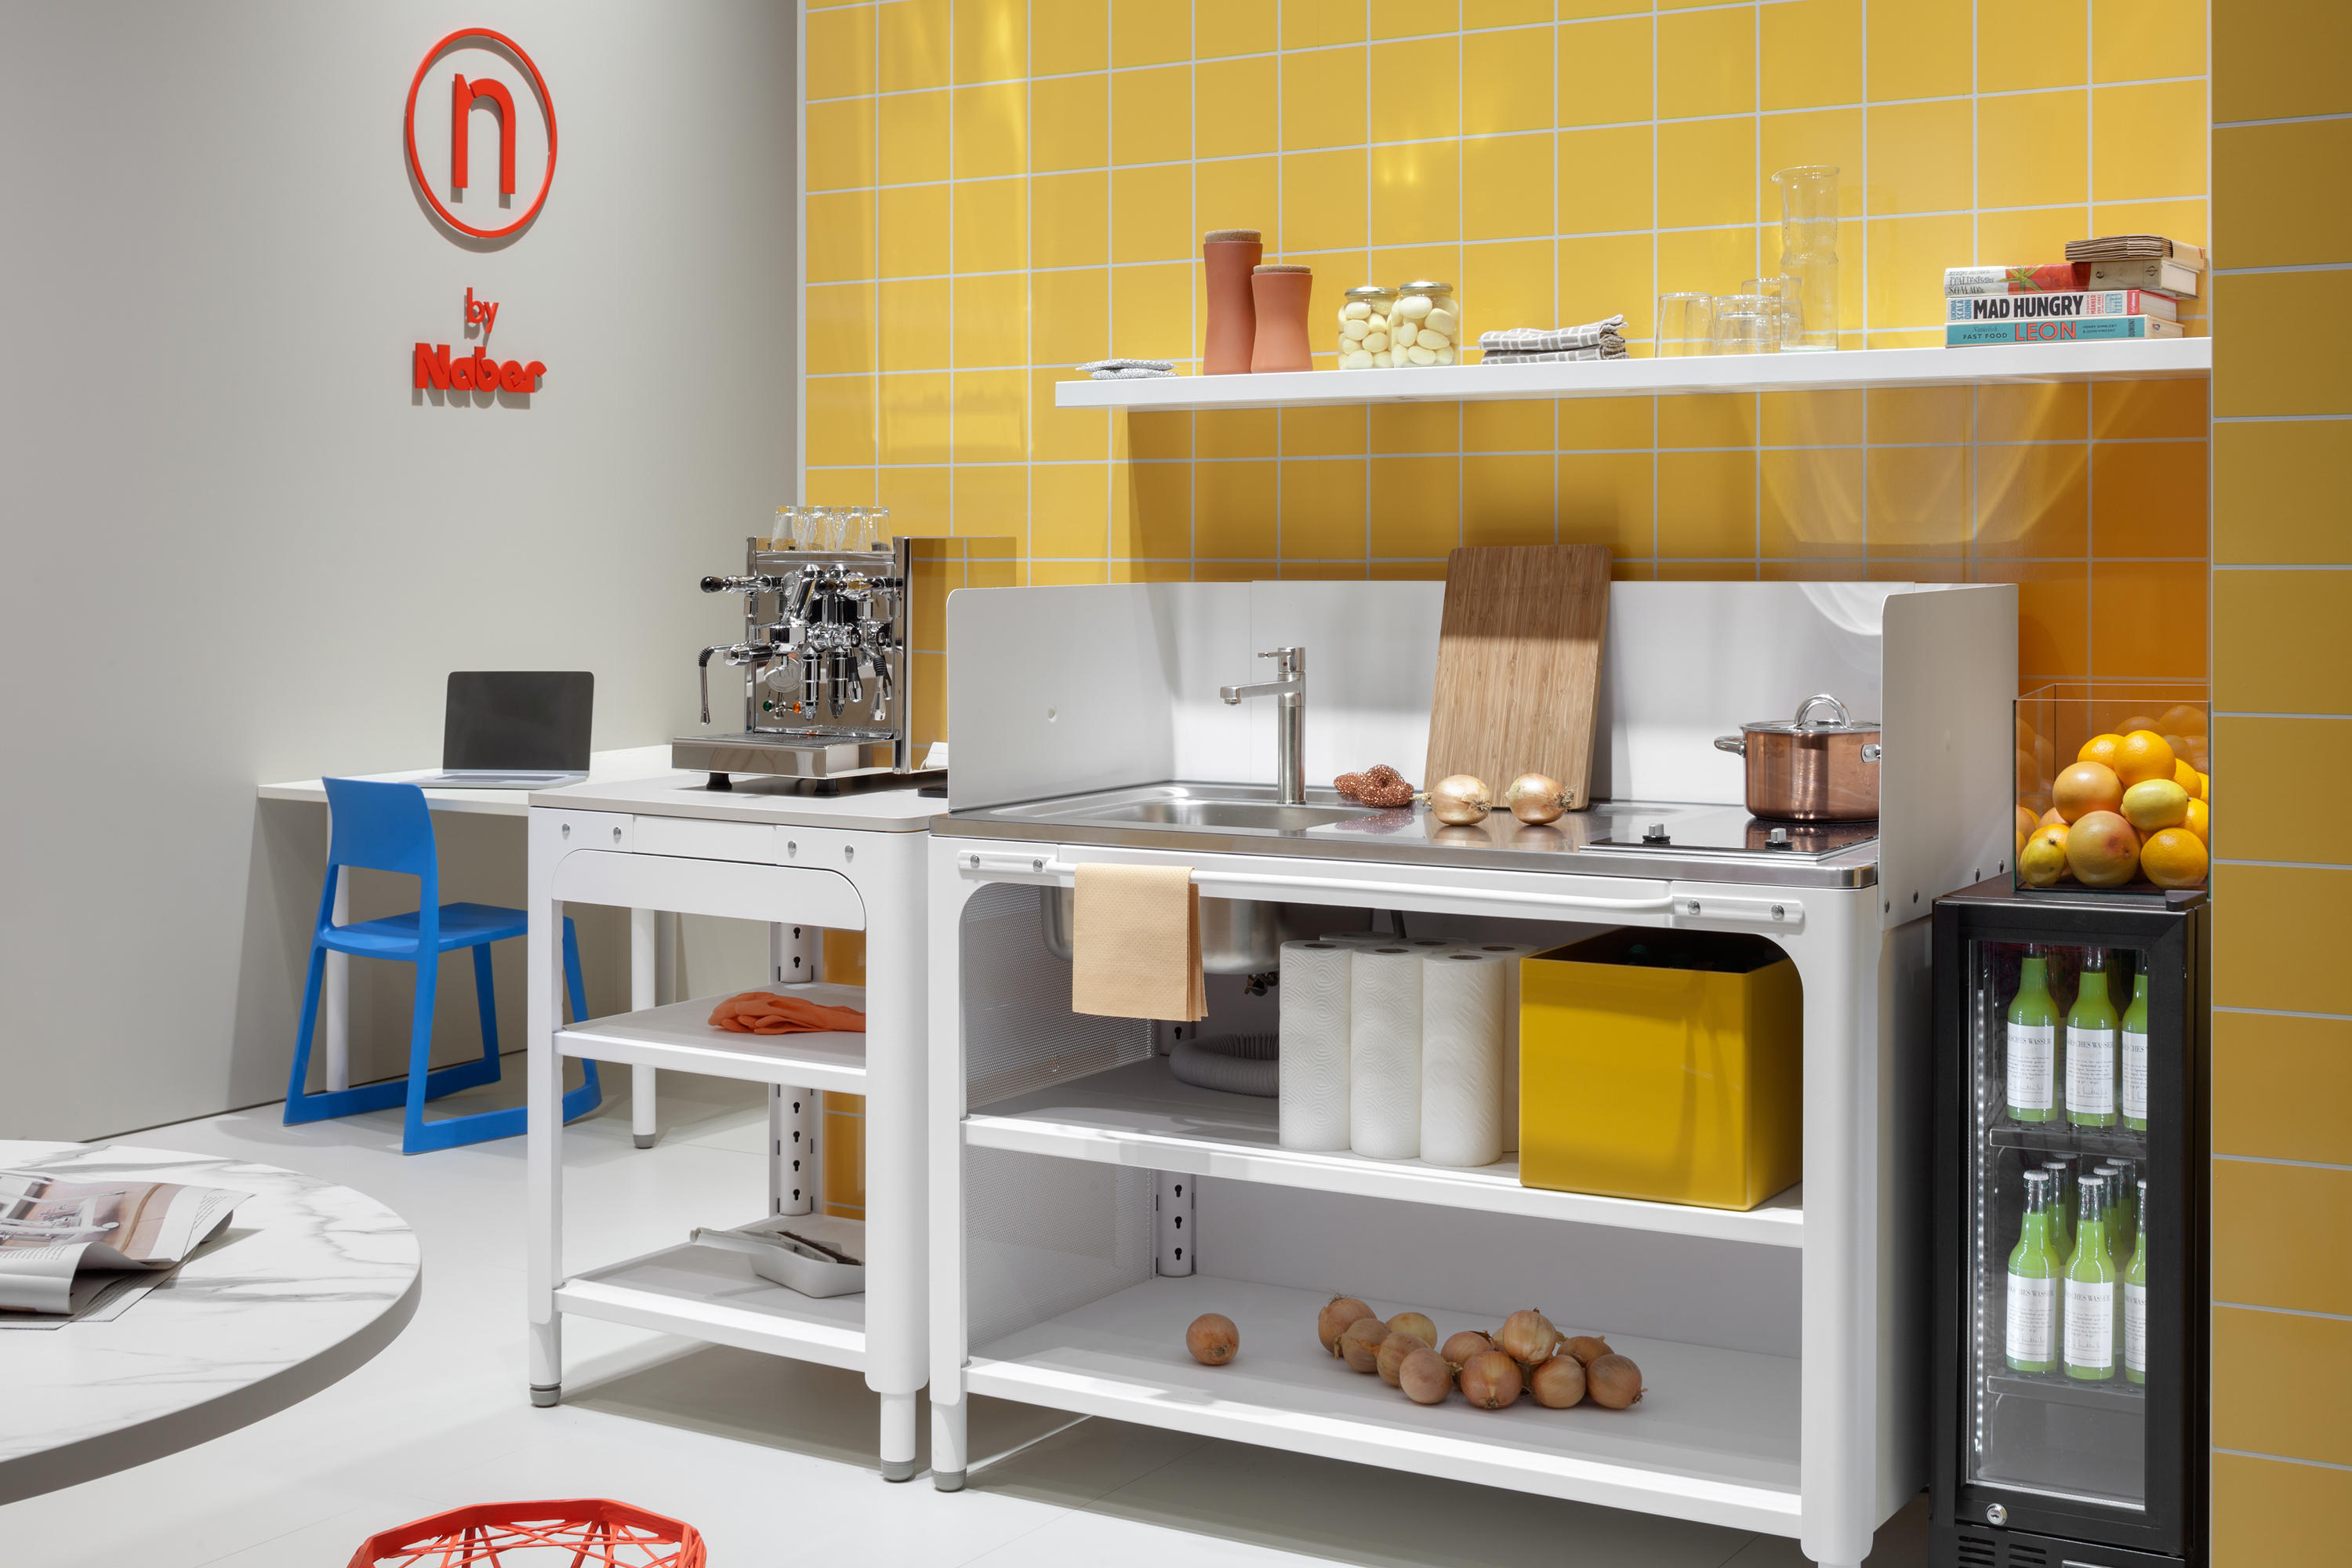 Naber Küchen Concept Kitchen Modular Kitchens From N By Naber Architonic